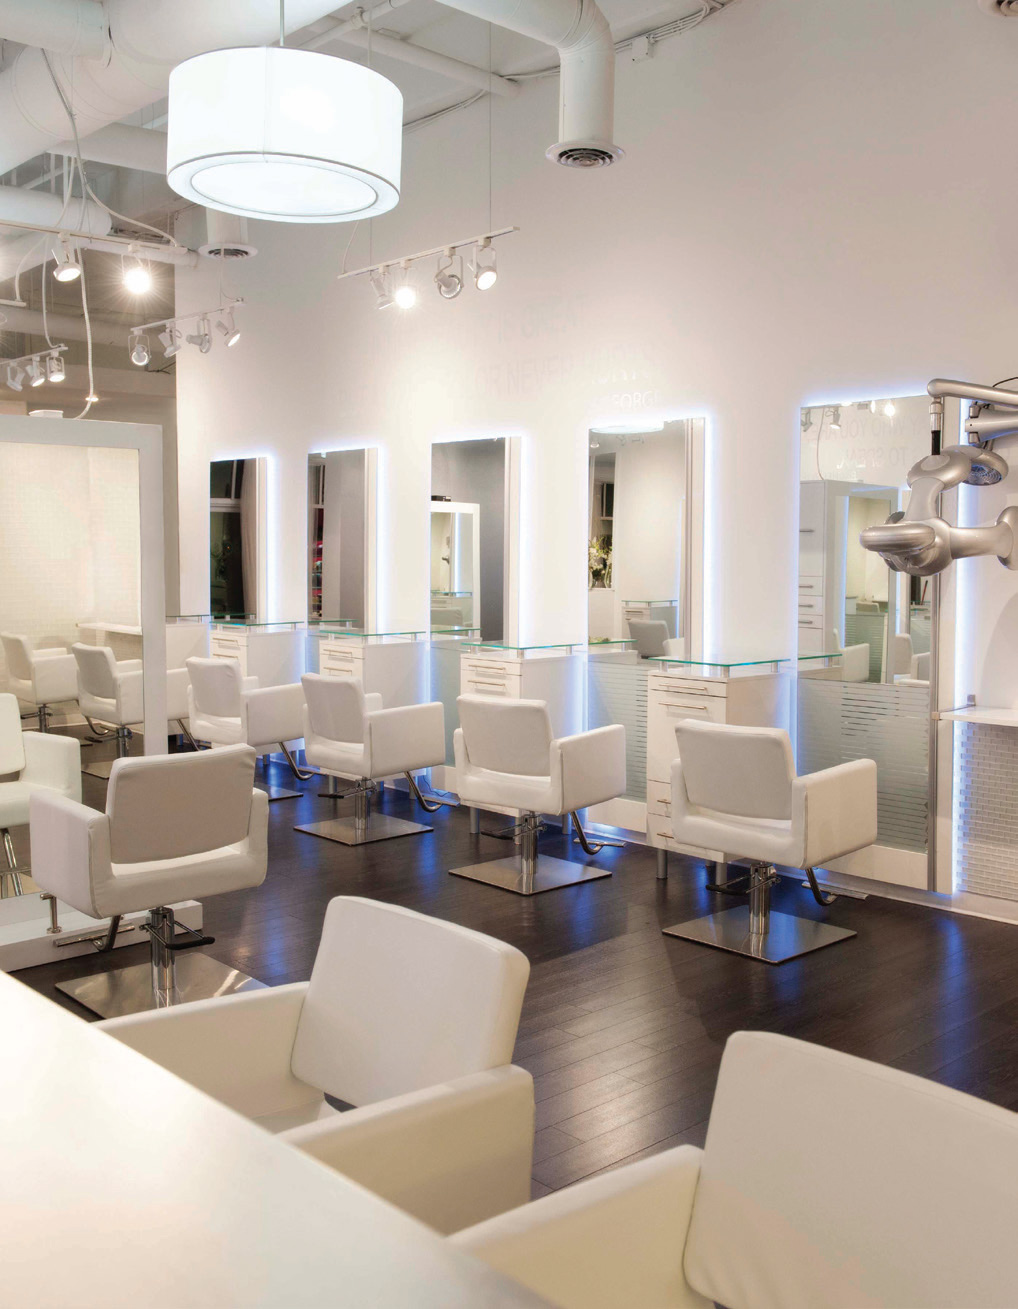 In Woodstock, Georgia, Salon Gloss' white decor provides the perfect canvas for the salon's artists to create fabulous hair.